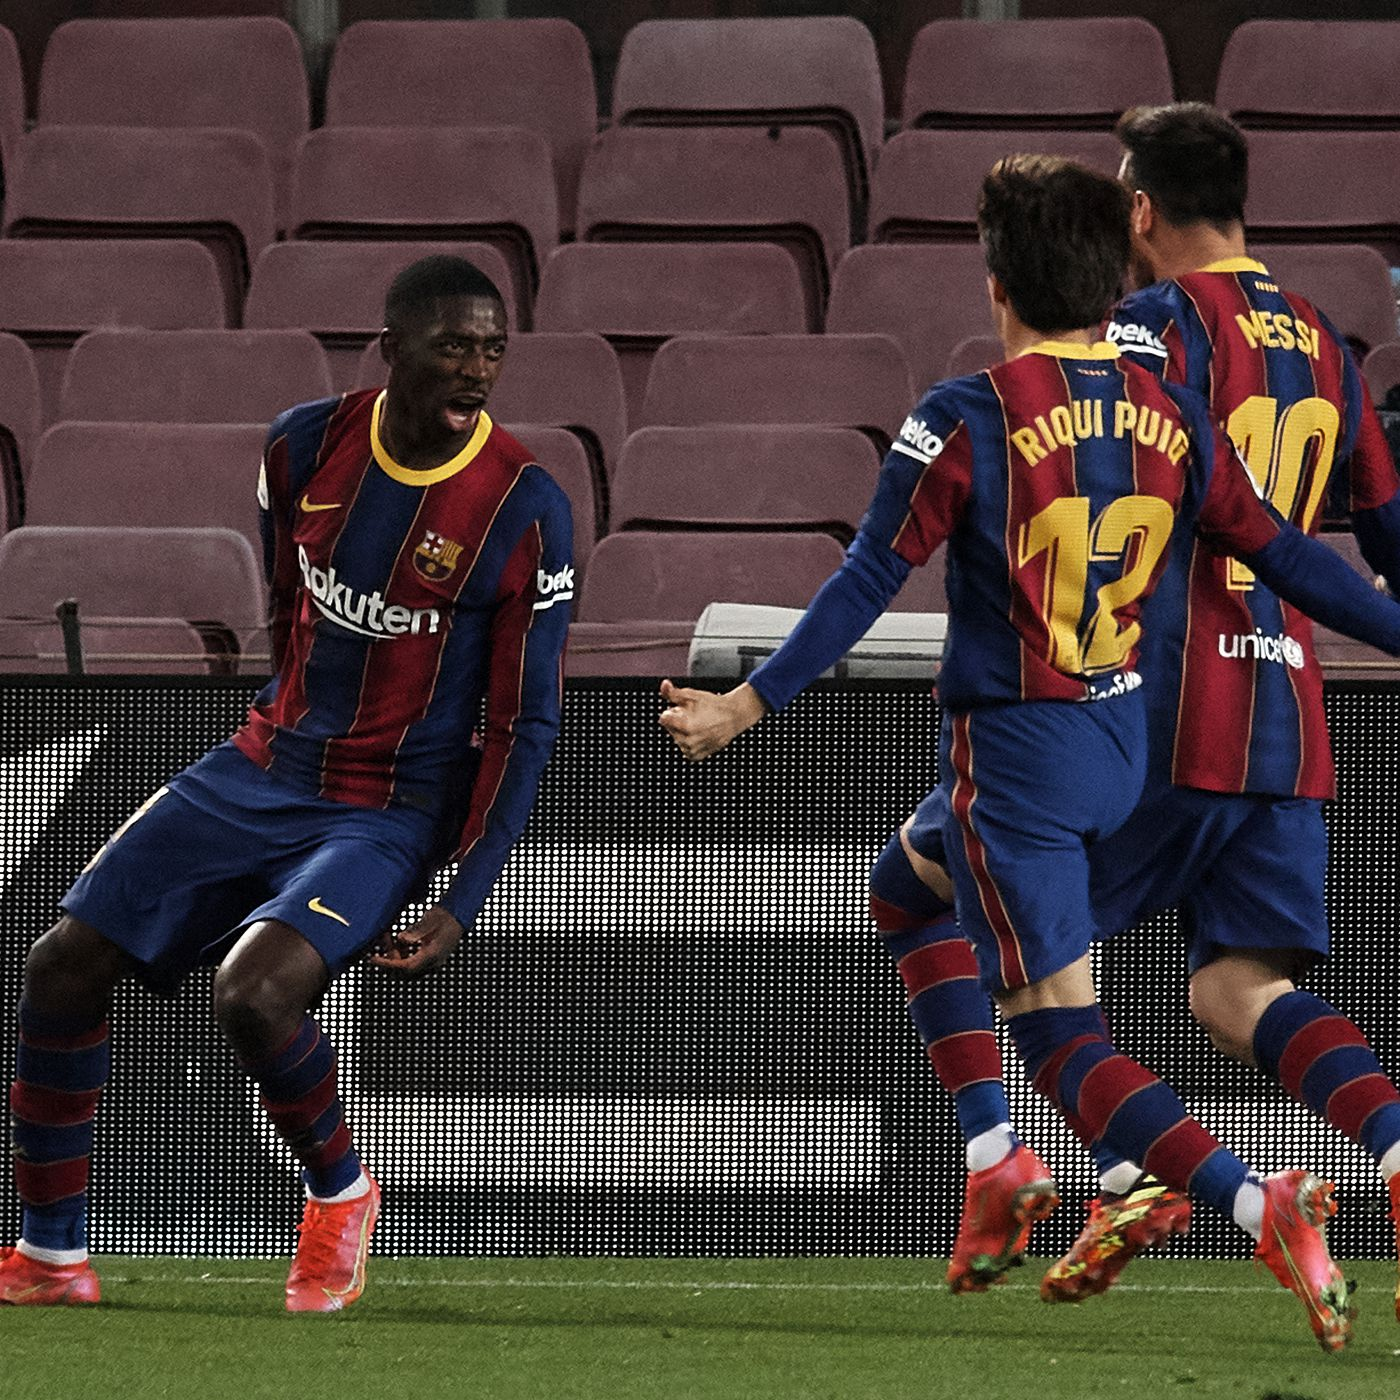 Barcelona move up to second against Valladolid